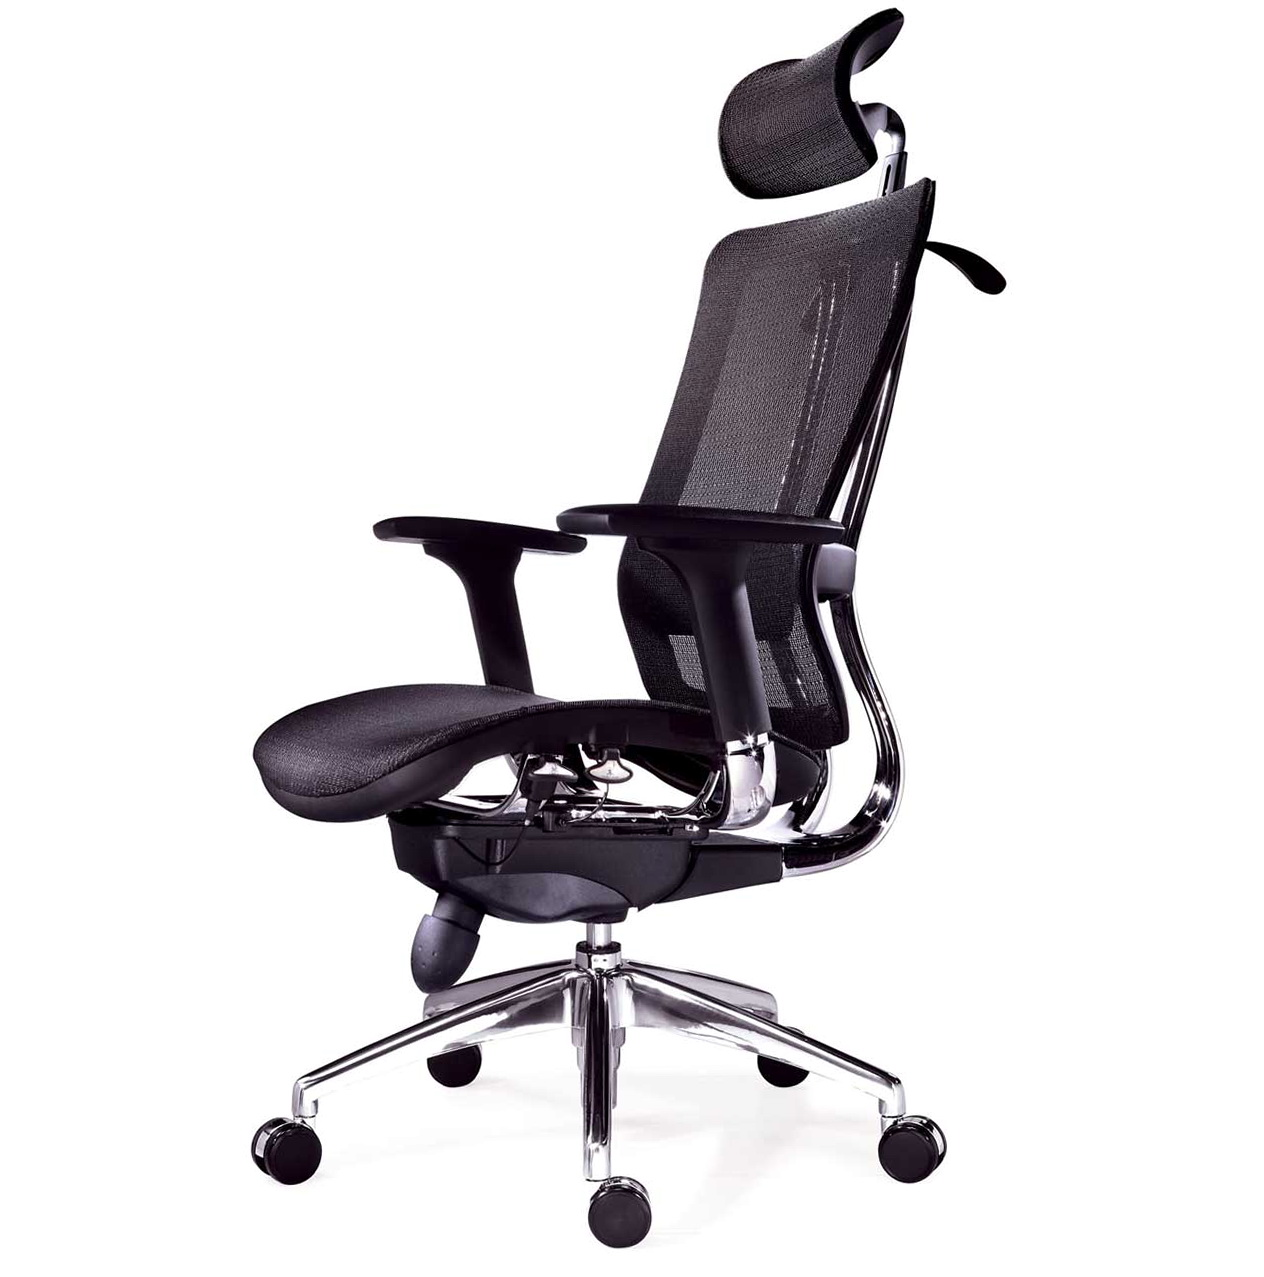 Best Office Chairs For Back Pain